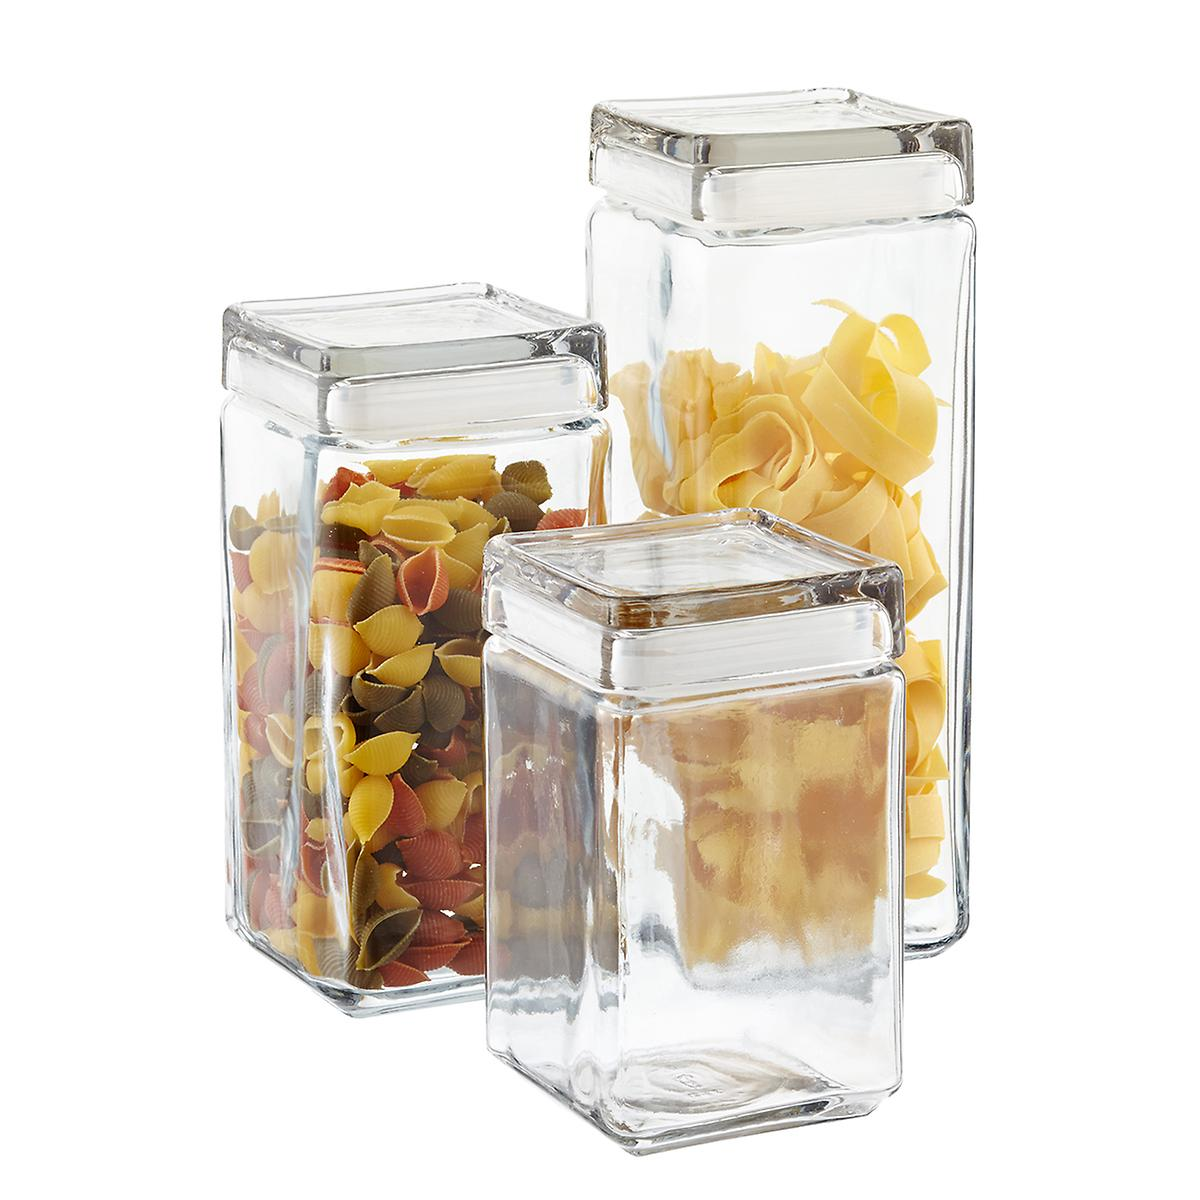 Space in the kitchen by adding shelves and glass canisters with seals - Stackable Square Glass Canisters